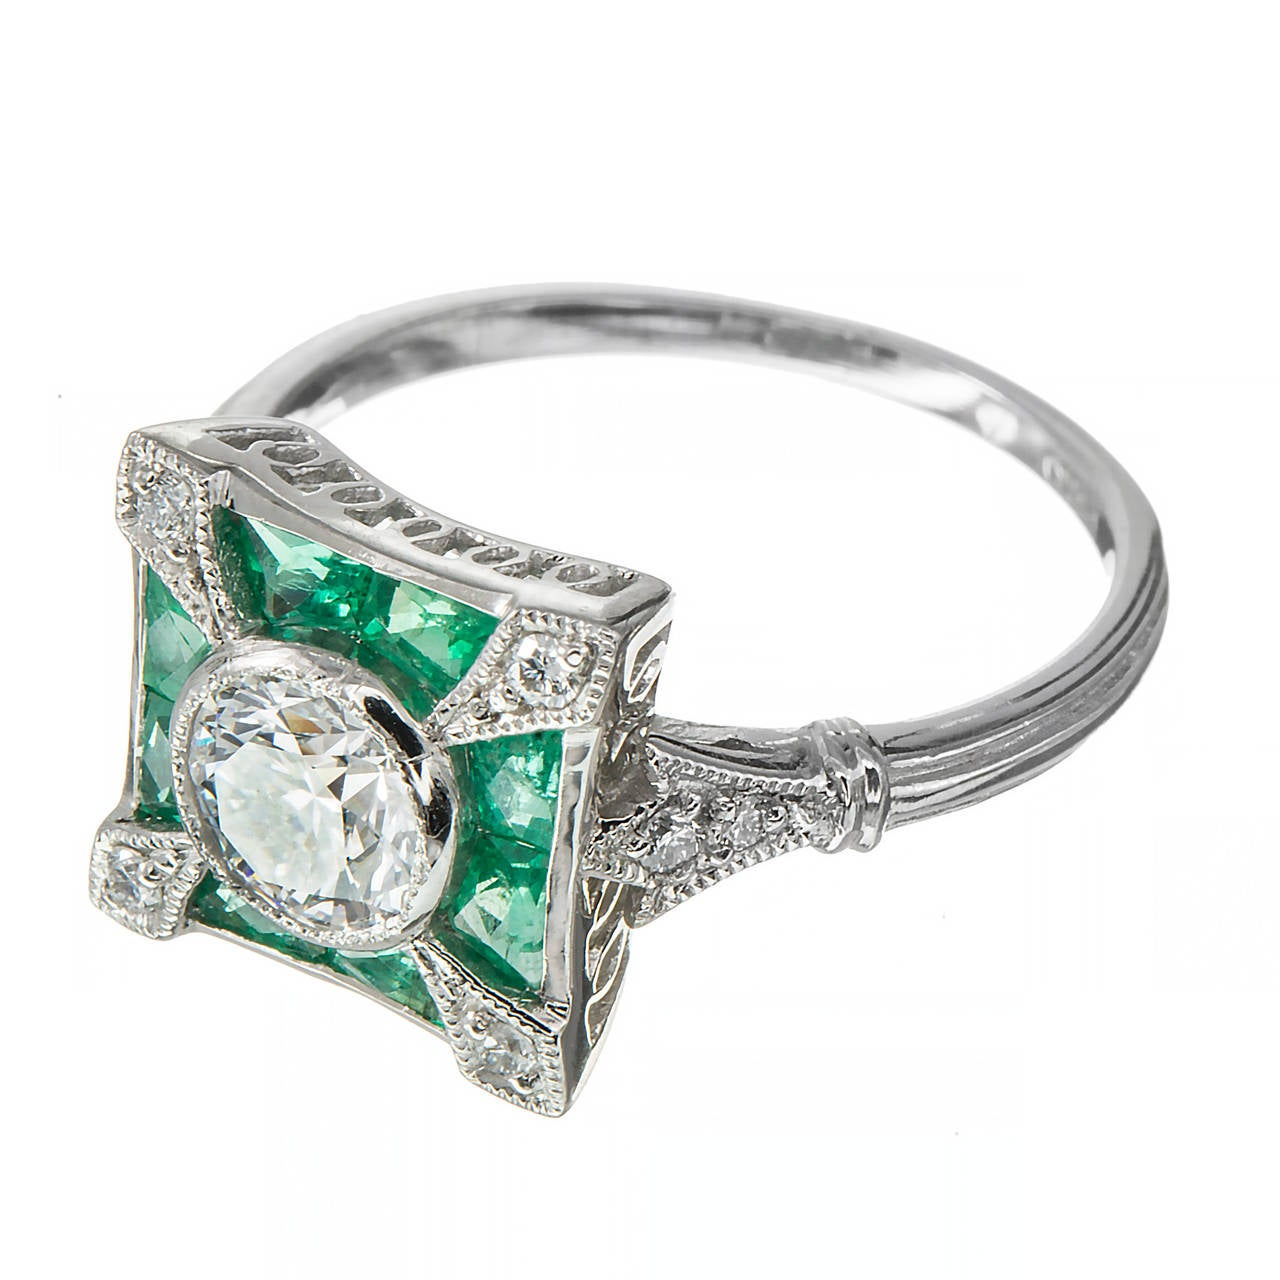 Center diamond GIA certified. Ideal cut 0.65ct. E, VVS1. Platinum ring with calibre cut genuine Emeralds. Center diamond removed for grading and then reset.   1 round diamond, approx. total weight .63cts, E, VVS1, excellent cut, GIA certificate